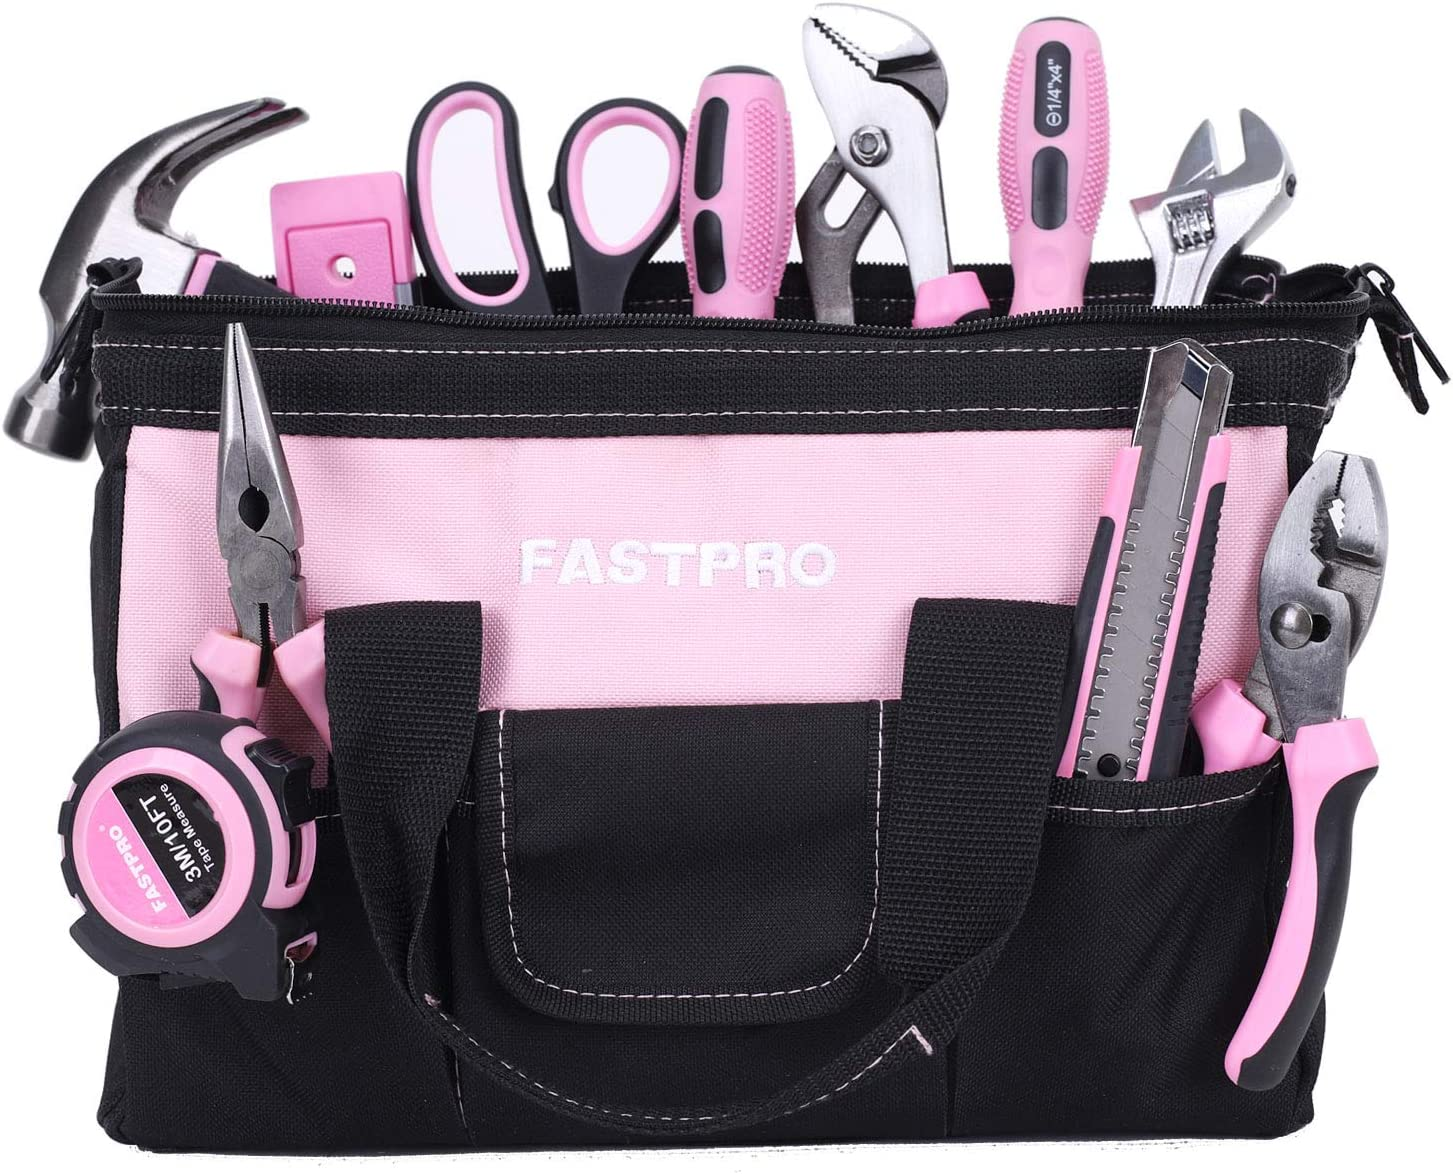 FASTPRO Pink Tool Set, 220-Piece Lady's Home Repairing Tool Kit with 12-Inch Wide Mouth Open Storage Tool Bag - -